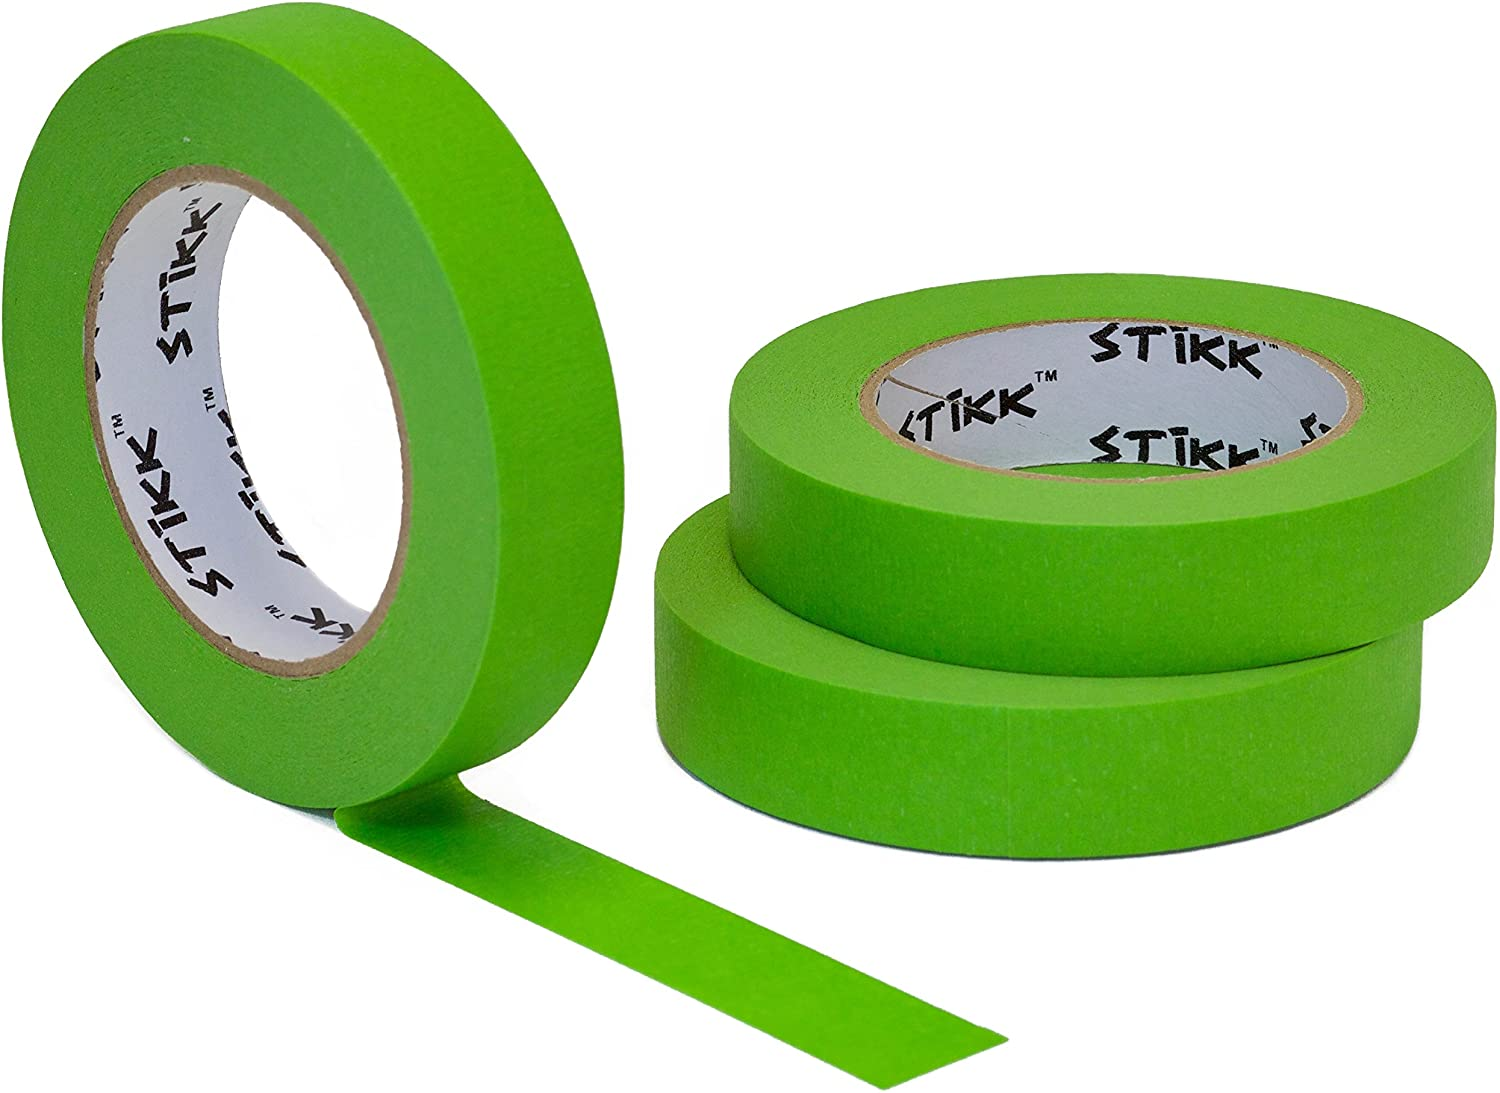 """3 Pack 1"""" x 60yd STIKK Green Painters Tape 14 Day Easy Removal Trim Edge Finishing Masking Tape (.94 in 24MM)"""